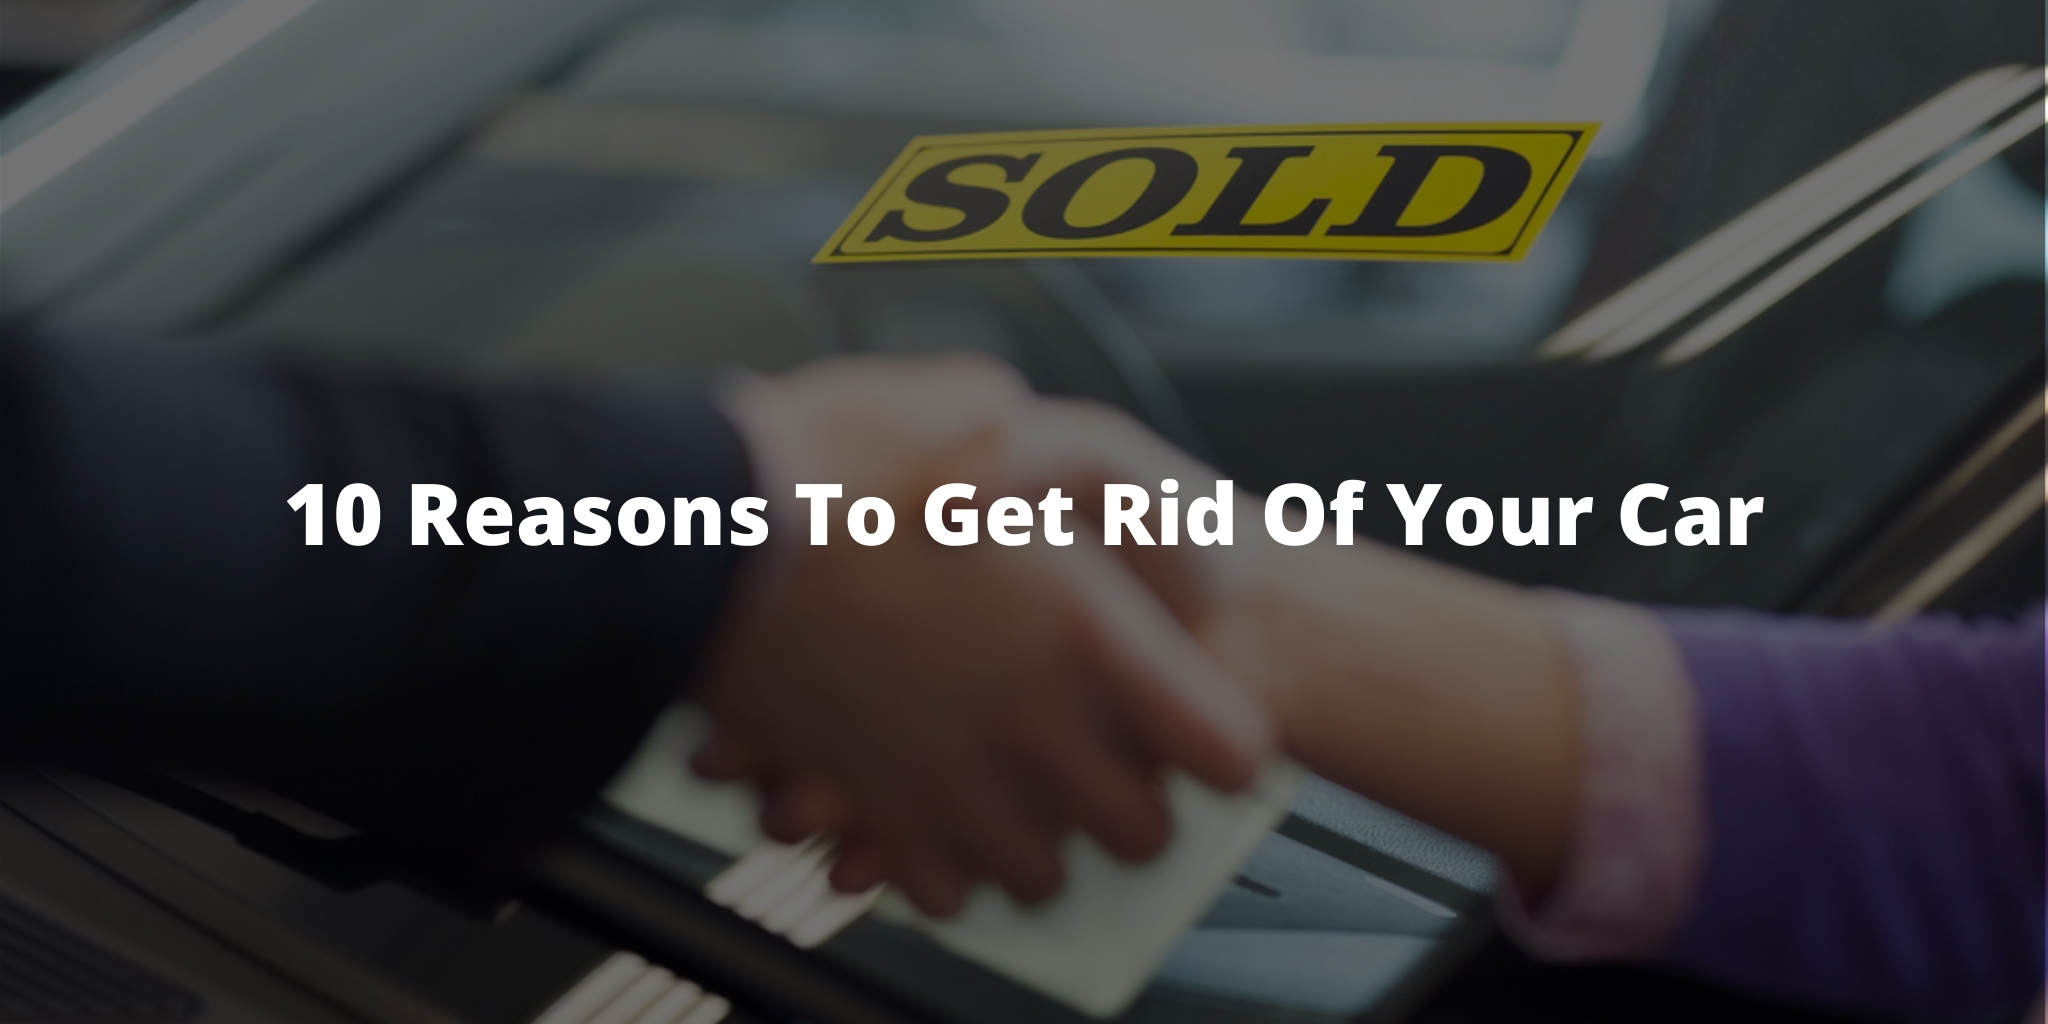 10 Reasons To Get Rid Of Your Car